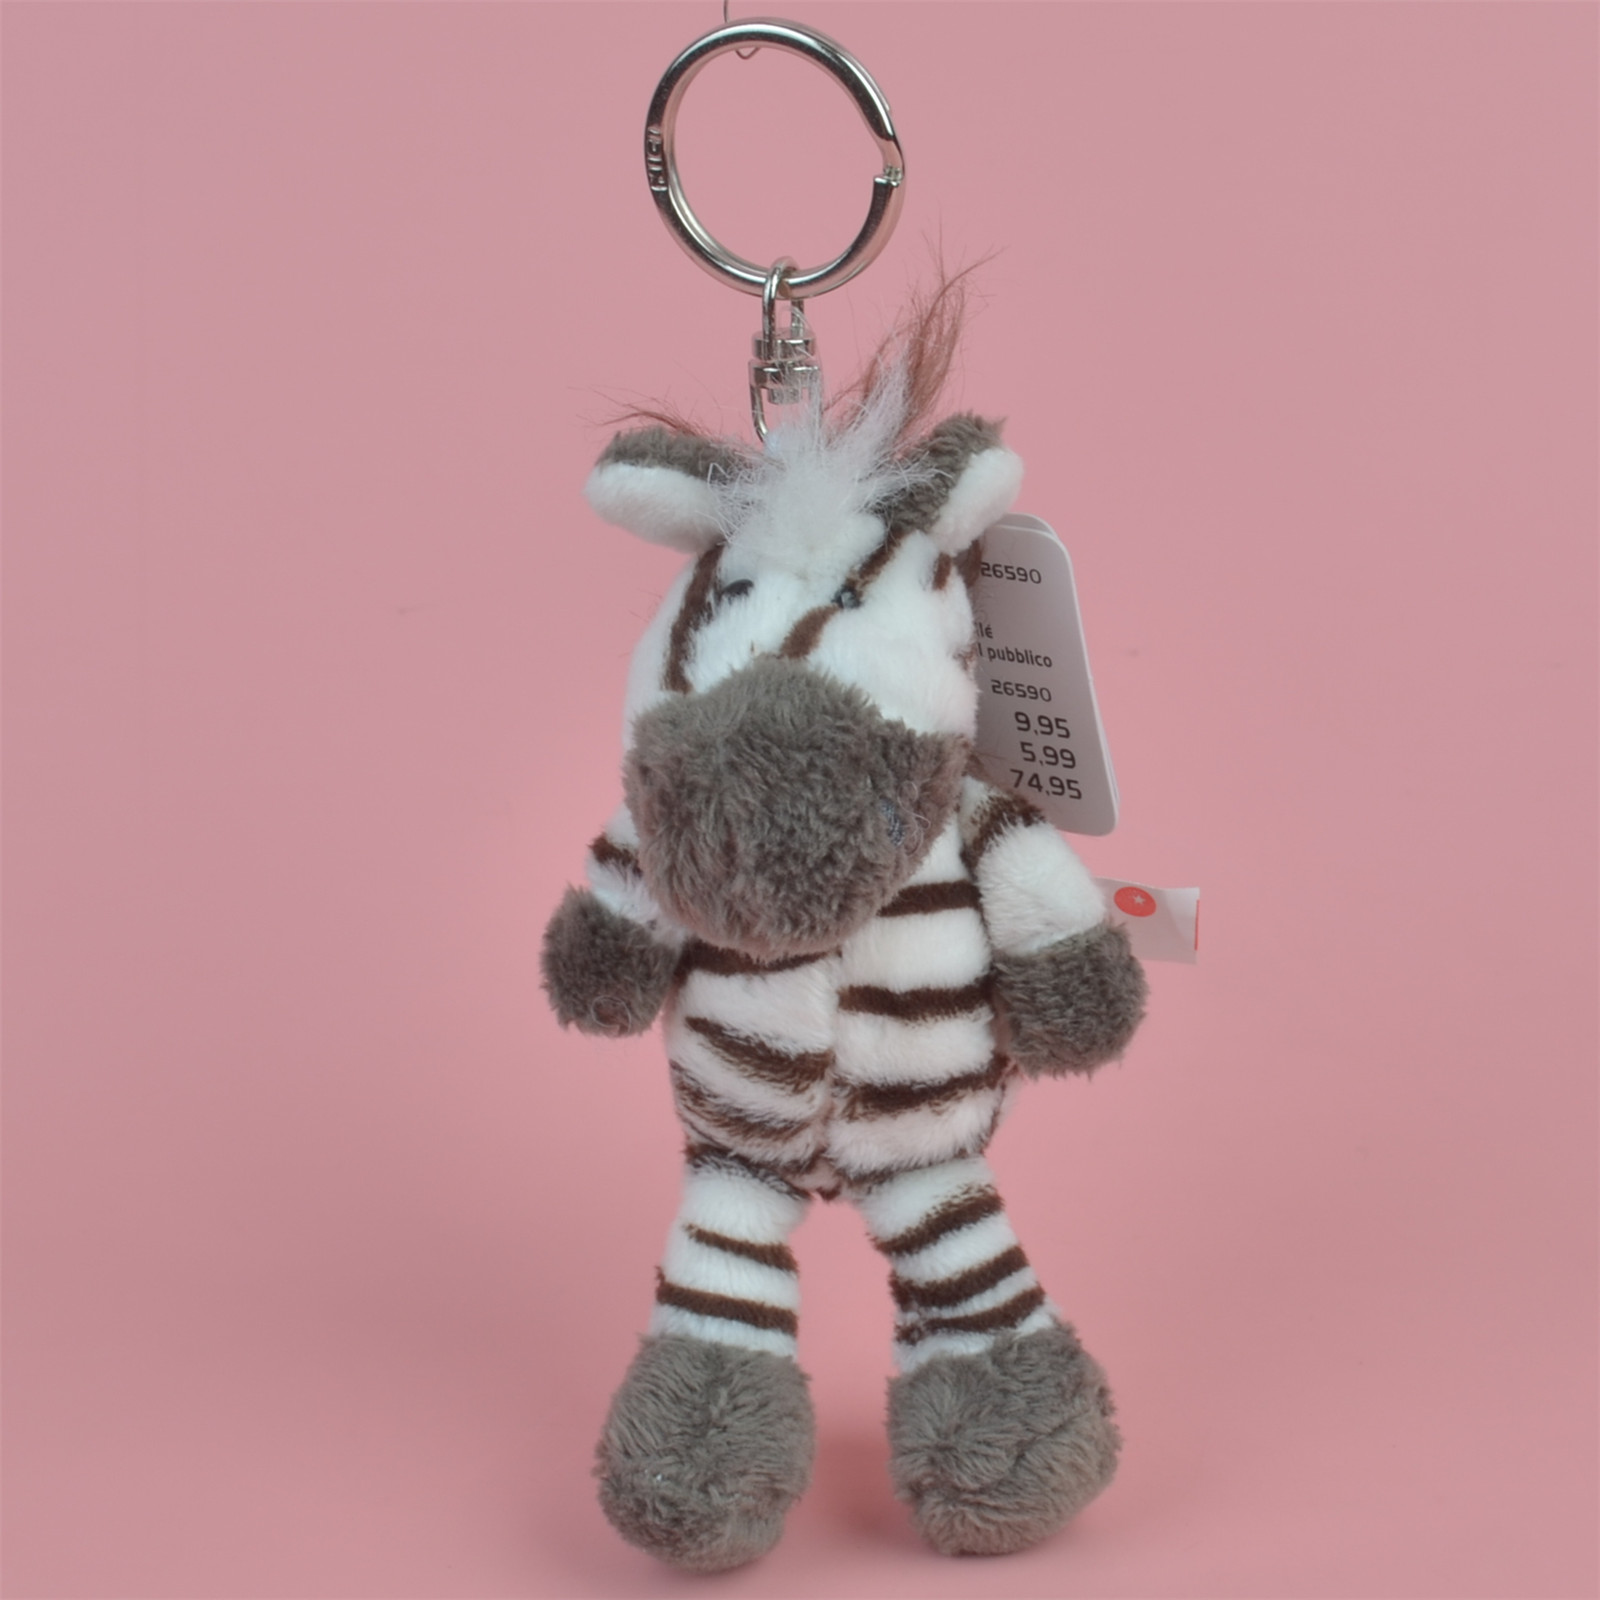 Zebra Animals stuffed Pendant  Keyring Plush Toy, Backpack Decoration  Keychain / Keyholder Gift